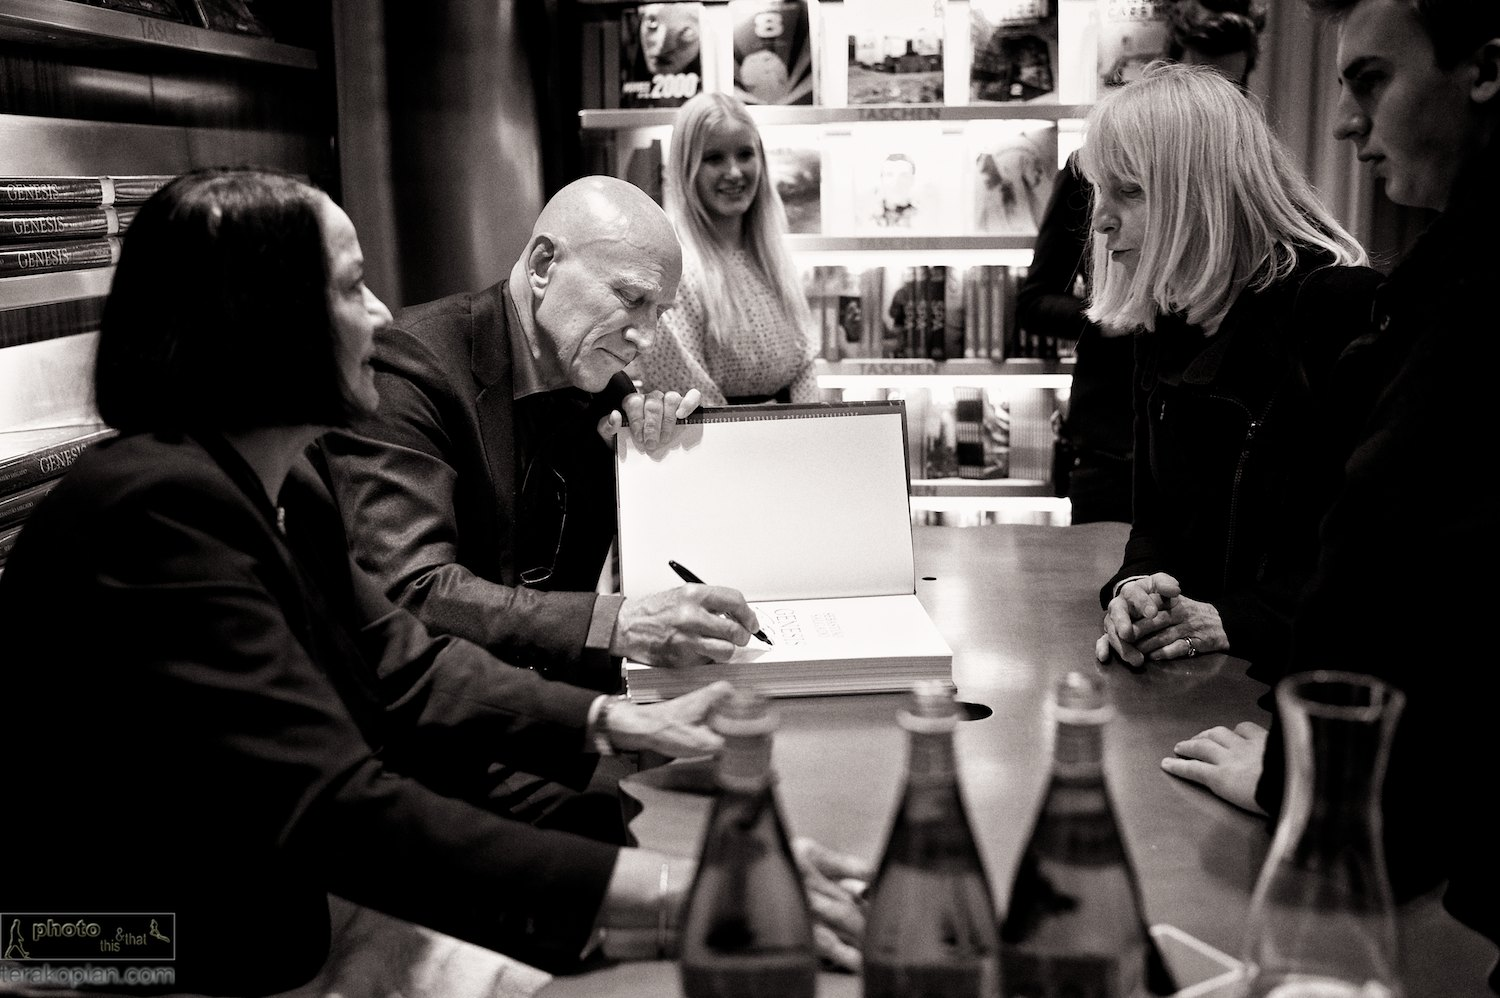 Sebastião Salgado: Genesis book signing.   L-R: Lélia Wanick Salgado (wife, curator & editor of the book) and photographer Sebastião Salgado. TASCHEN Store London, 12 Duke of York Square, London. April 10, 2013. Photo: Edmond Terakopian